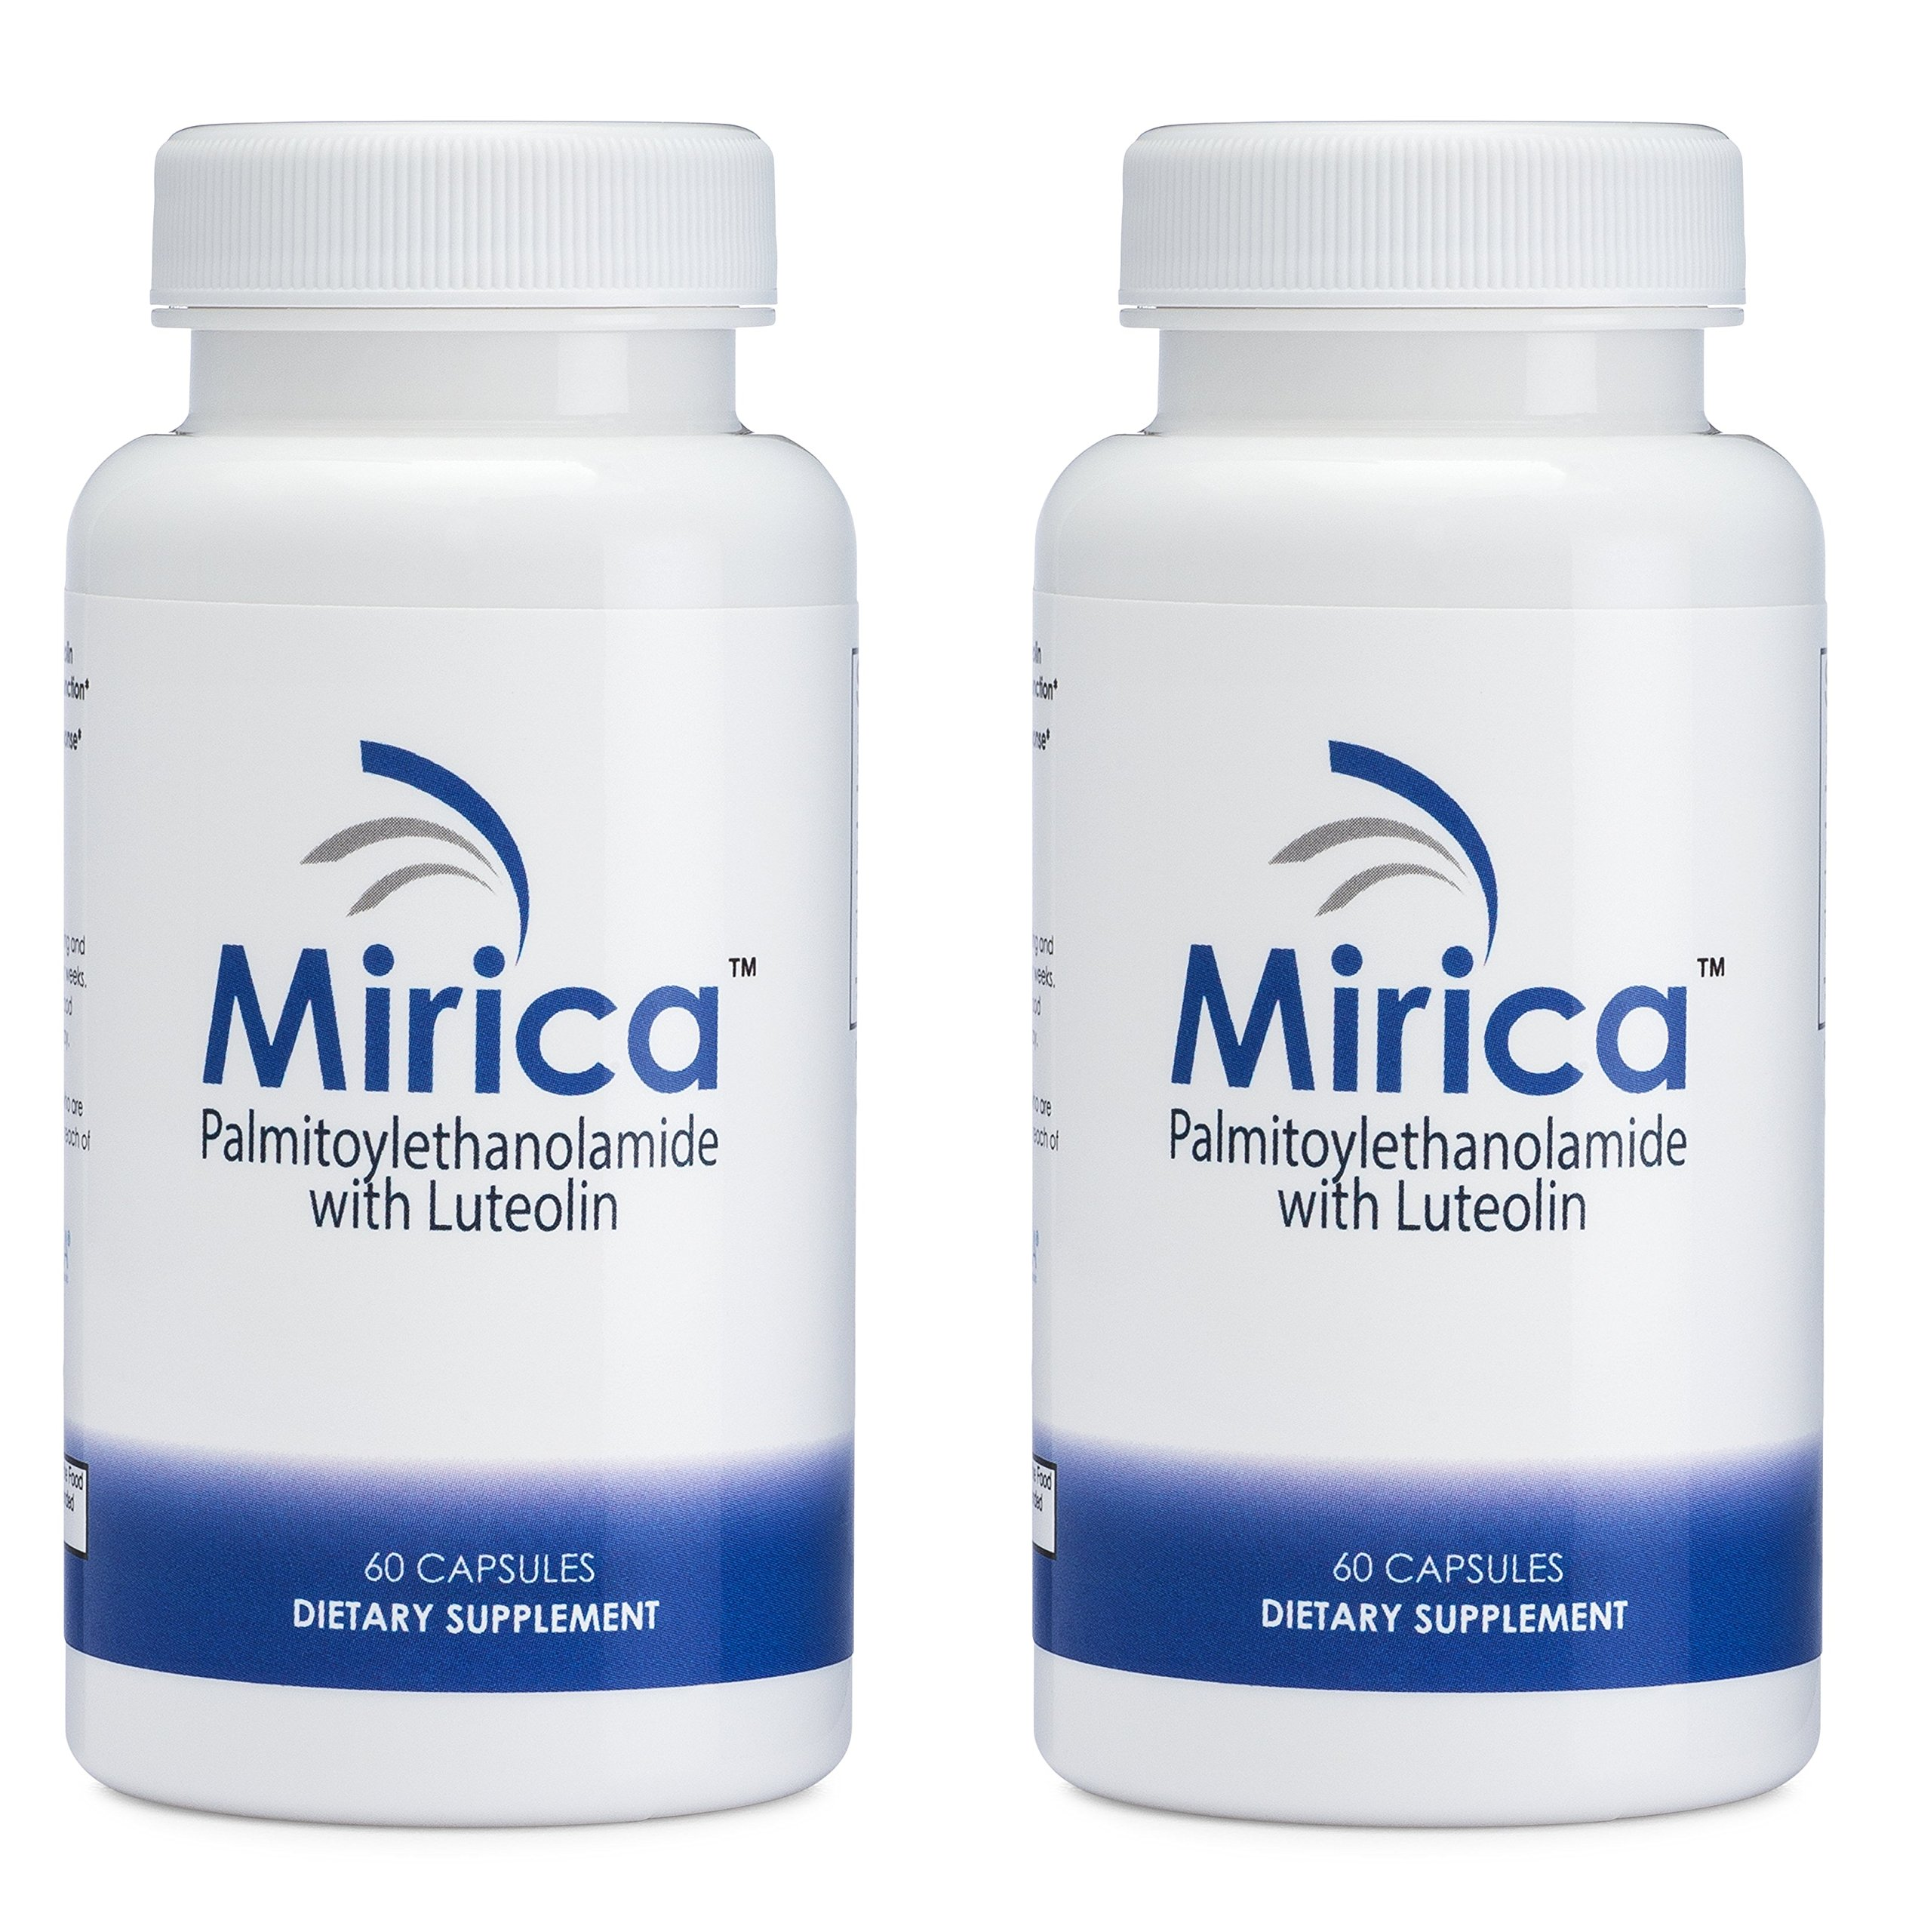 Mirica® Palmitoylethanolamide (Pea) & Luteolin - 2 Pack - Natural Pain Relief - Made with OptiPEA® - Anti-Inflammatory Supplement by Mirica